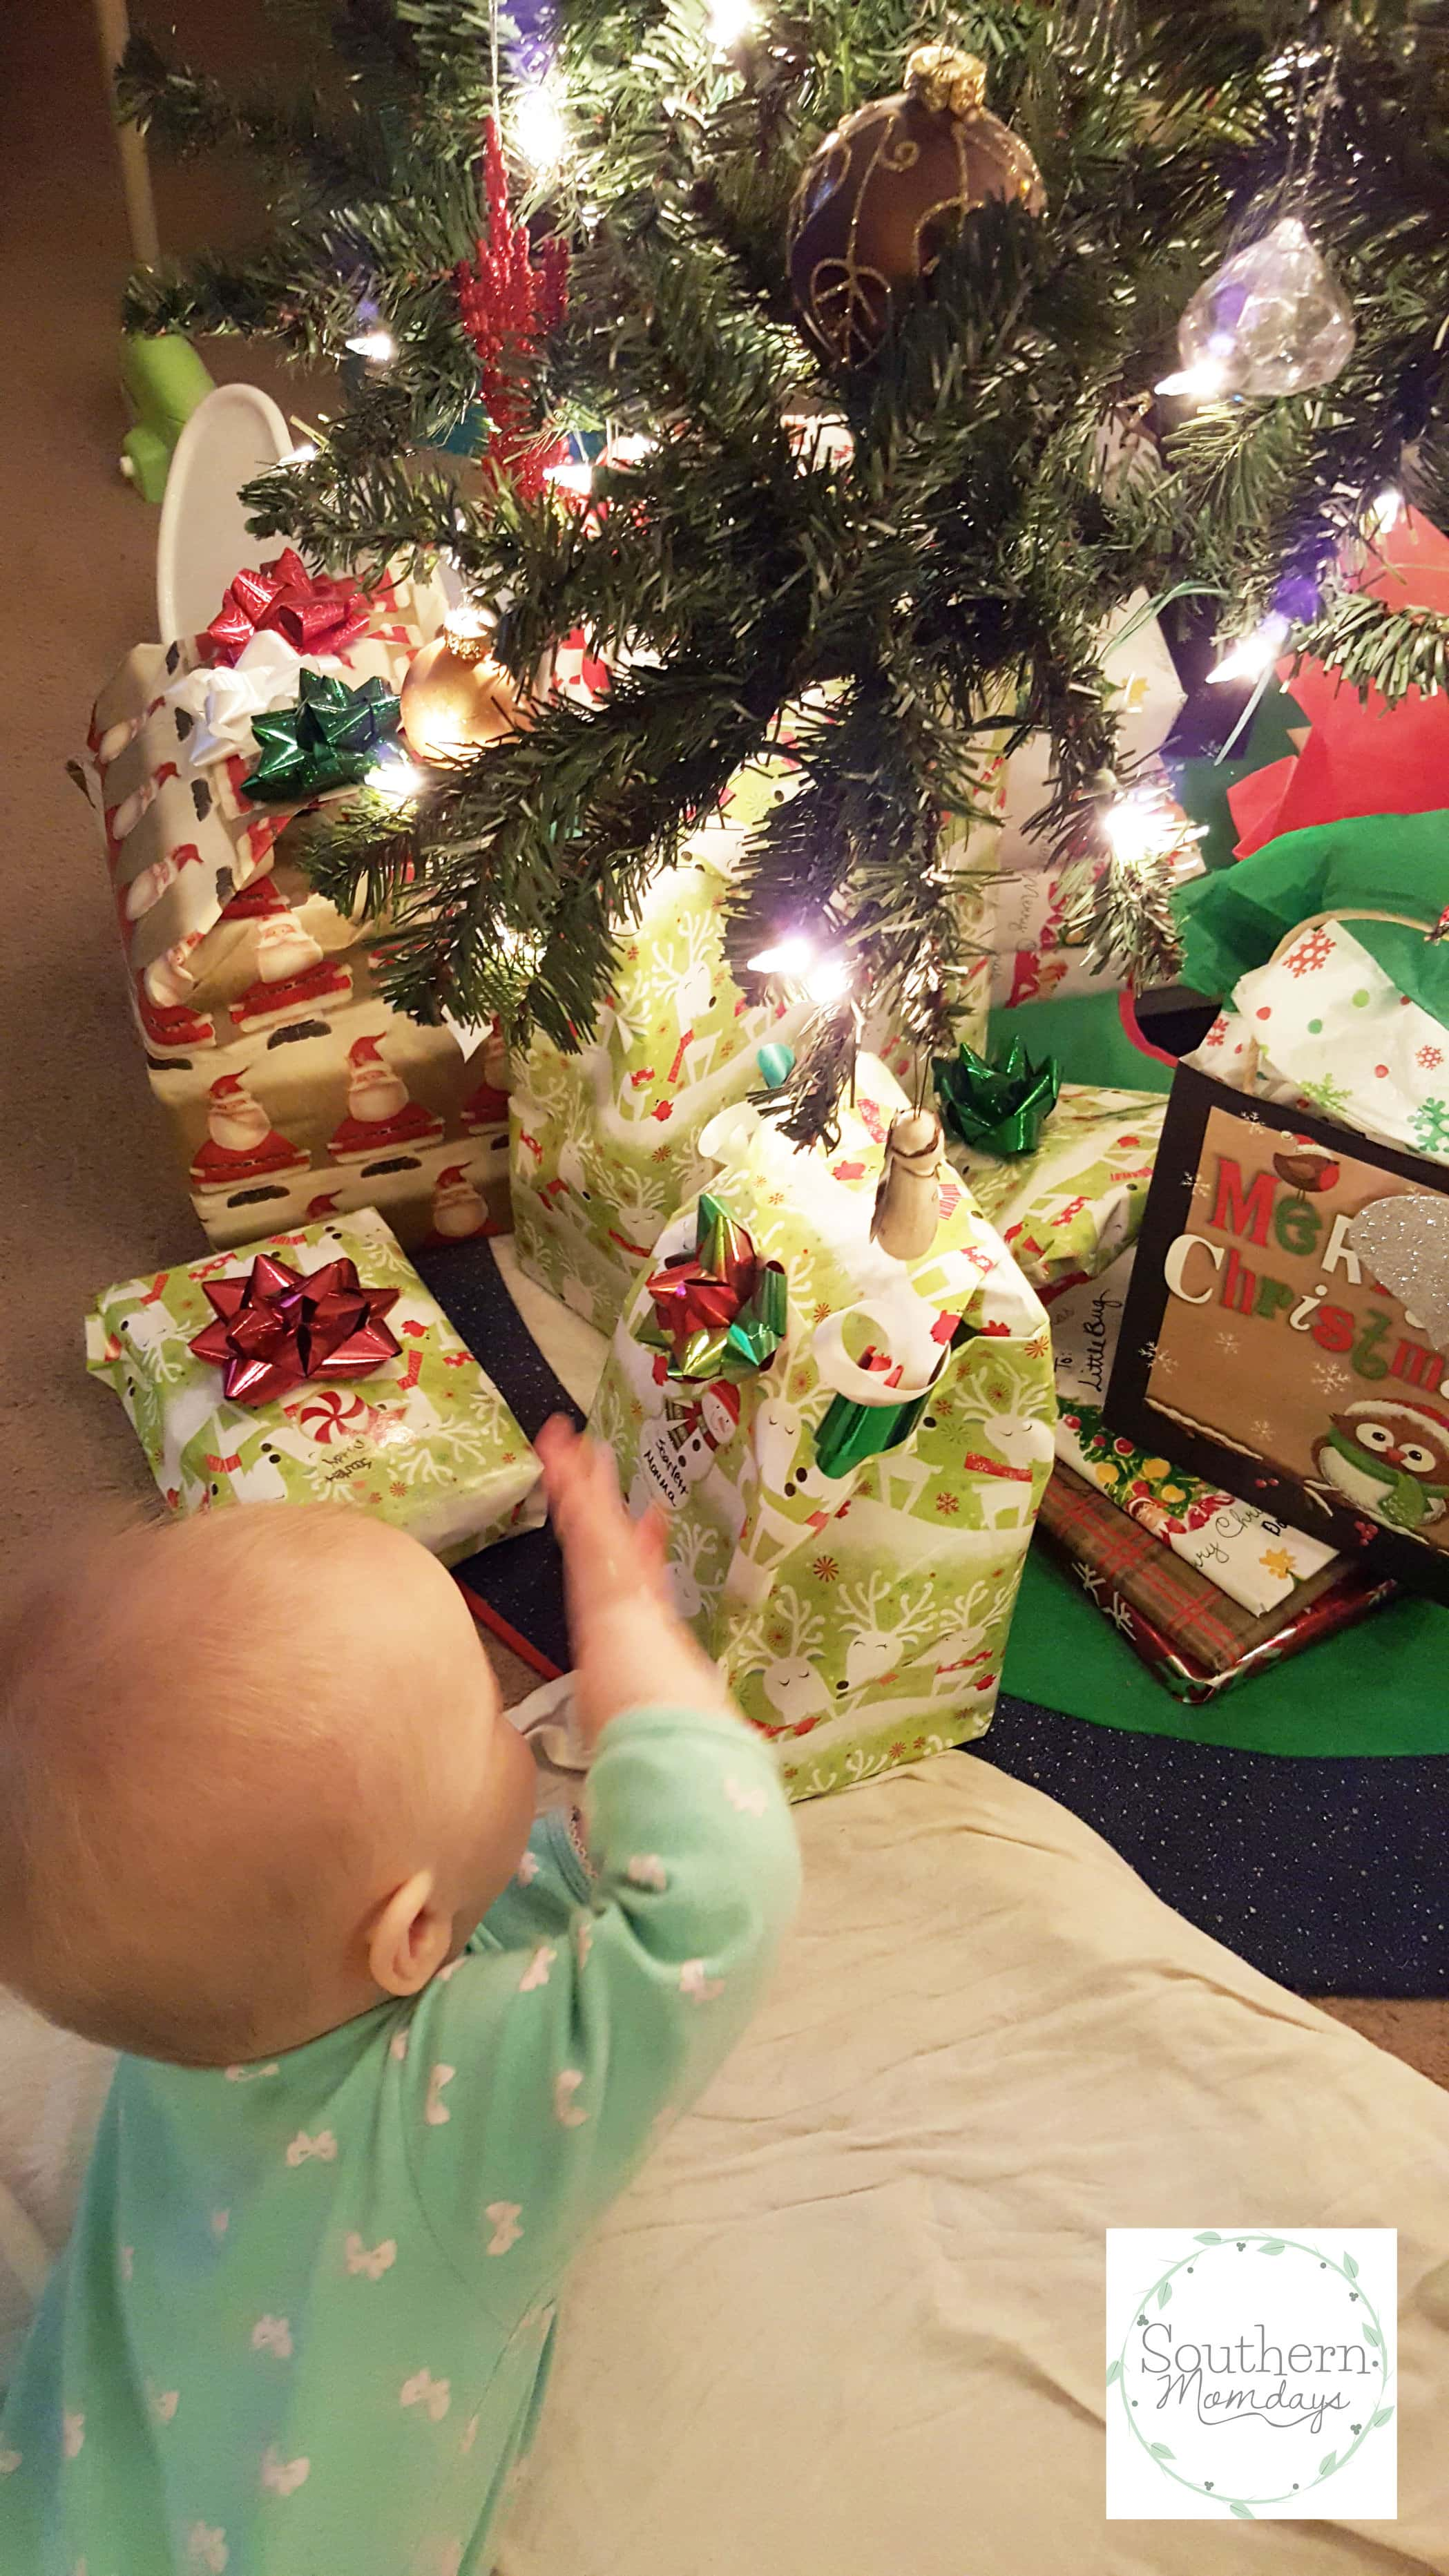 Baby playing with Christmas gifts in How to Save for Christmas (the Easy Way), featured in a holiday budget guide on the Southern Momdays blog